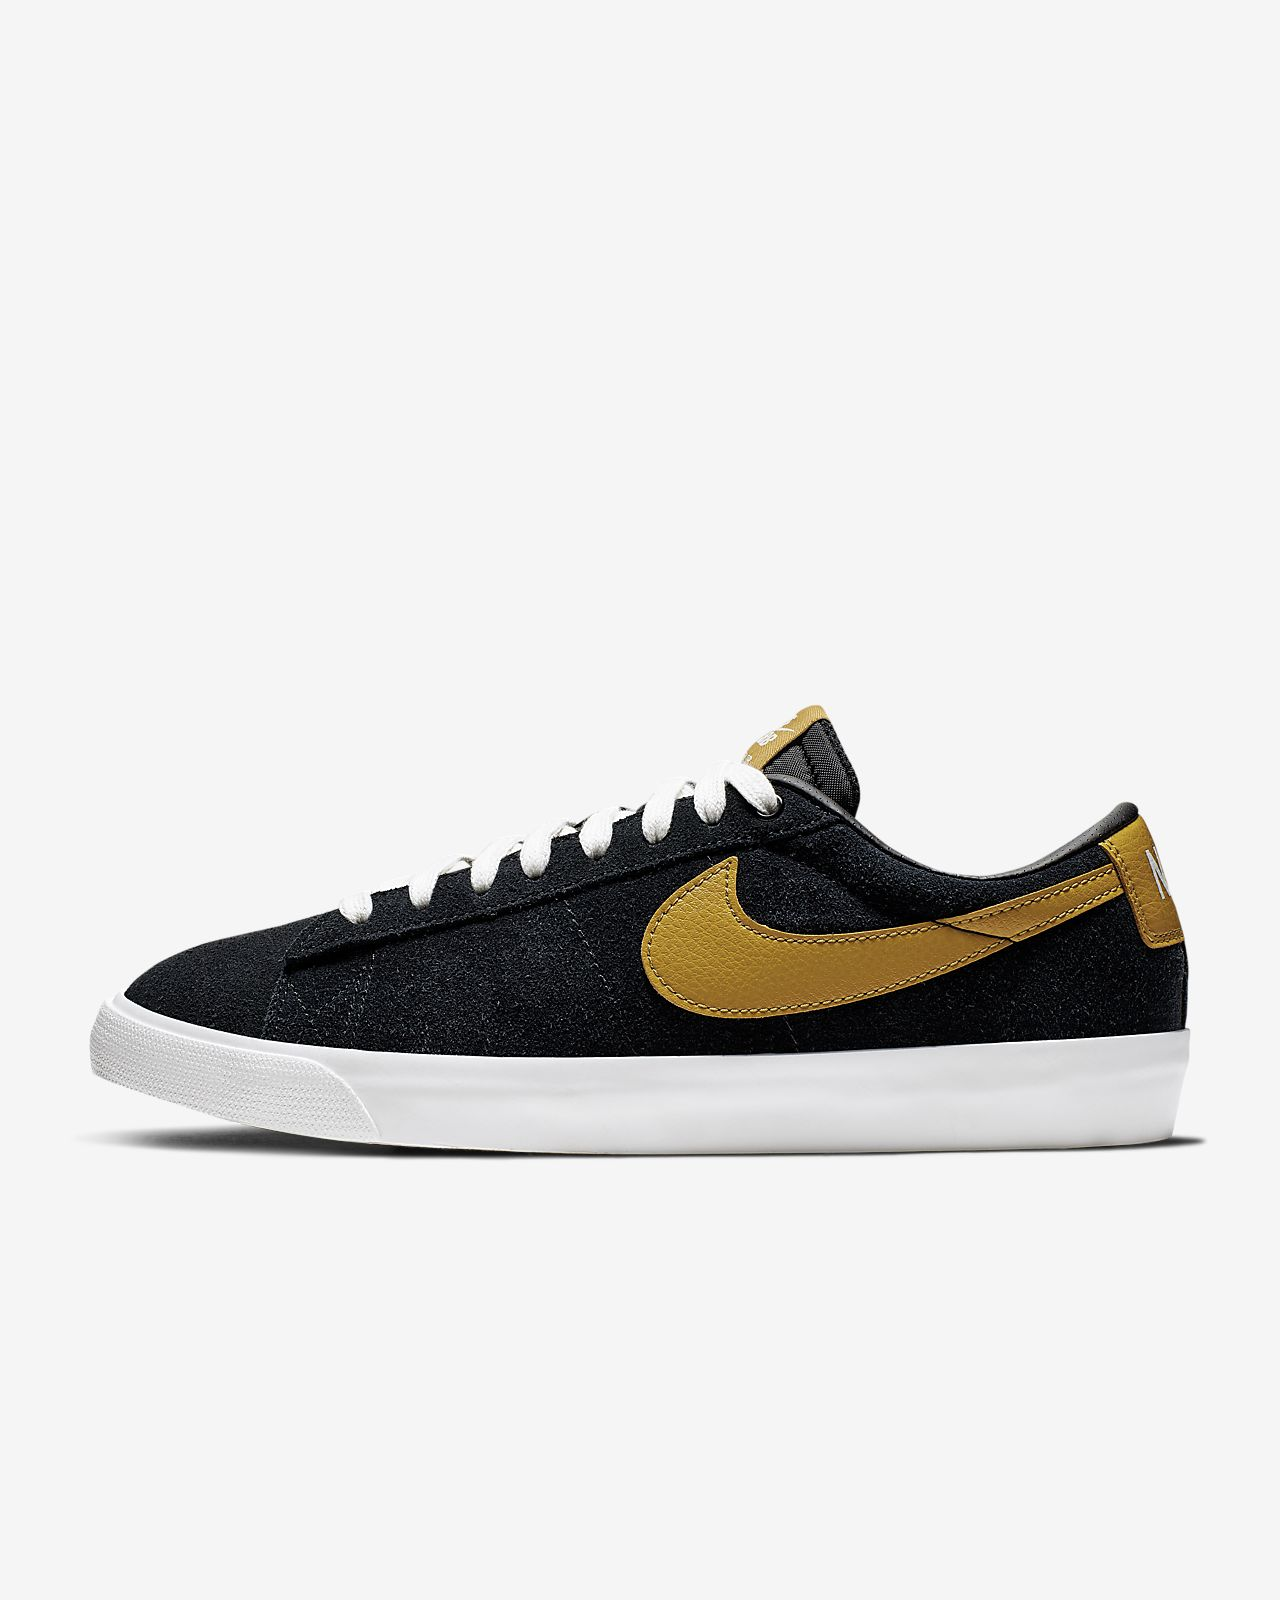 premium selection 3eac6 89a0e Nike SB Blazer Low GT Skate Shoe